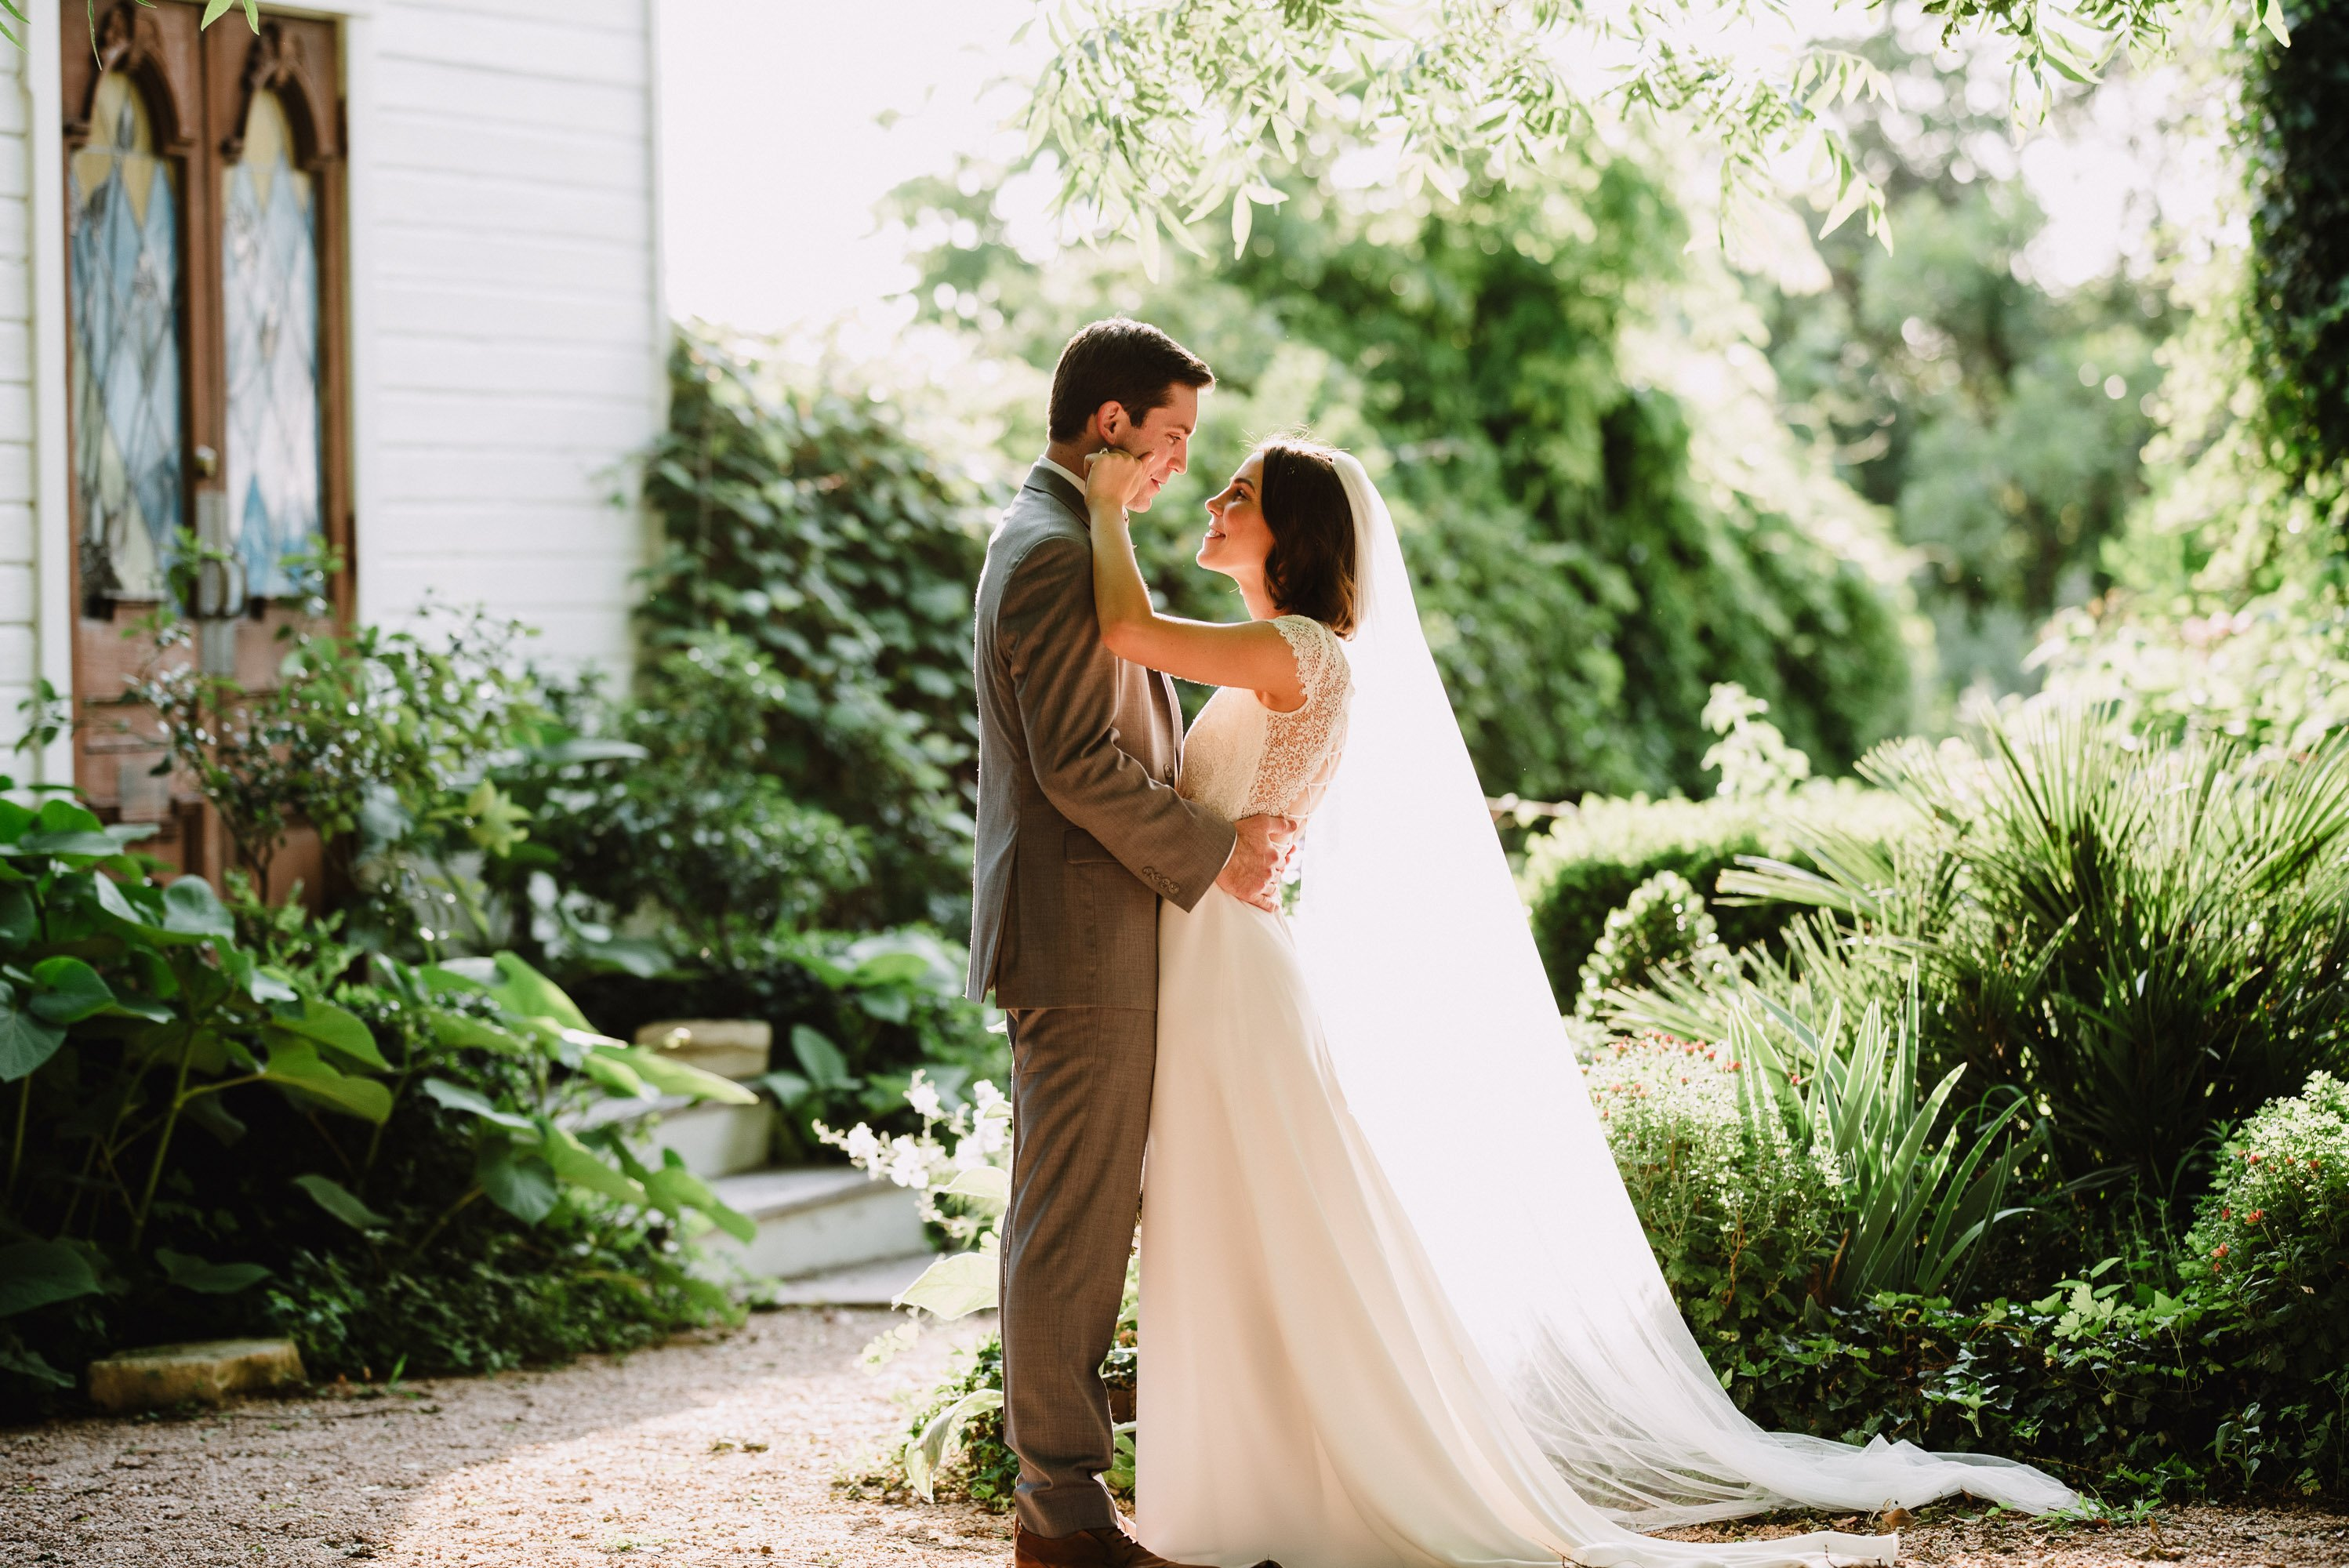 colorful and modern wedding photographer in austin